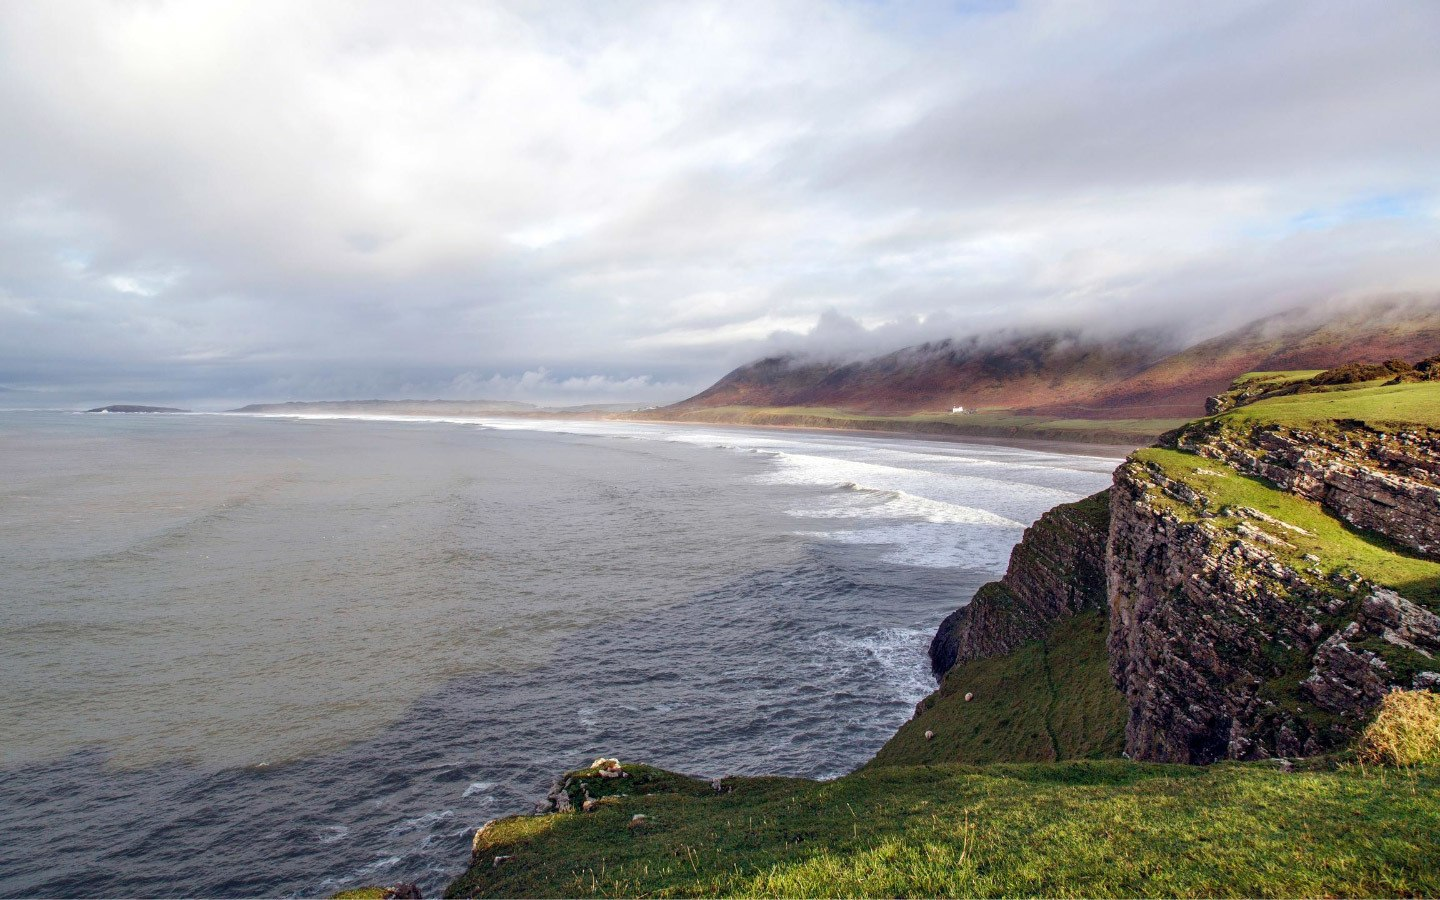 Rhossili Bay in the Gower Peninsula in South Wales